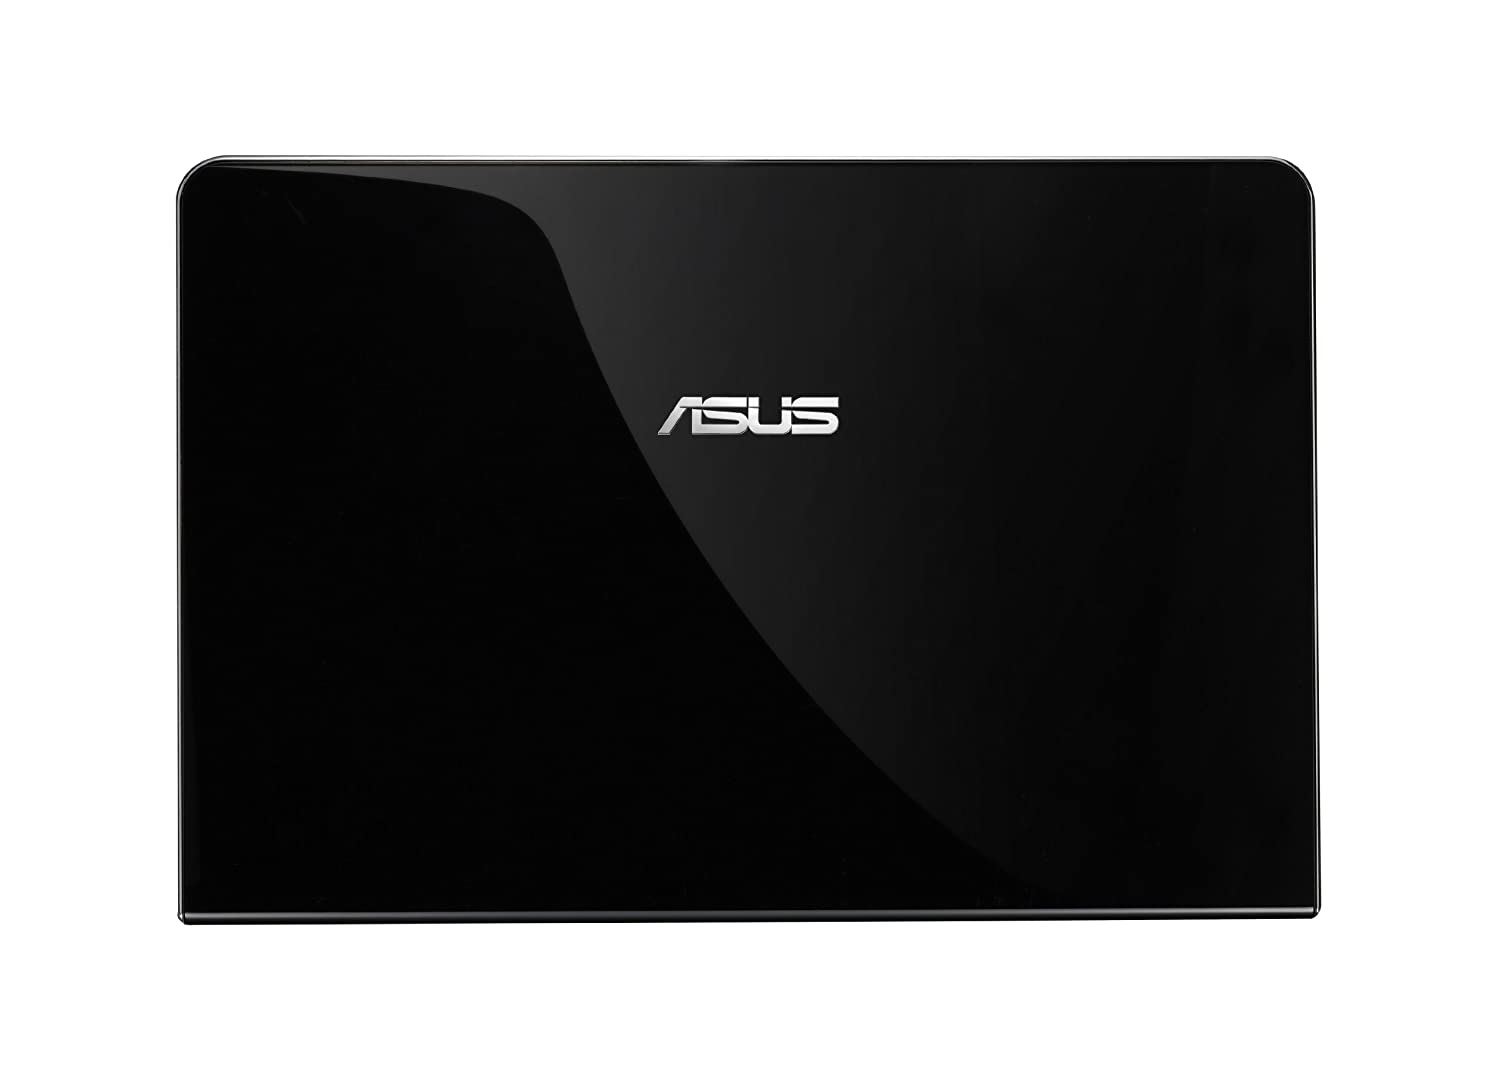 ASUS N55SL-DS71 DRIVER FOR WINDOWS 10